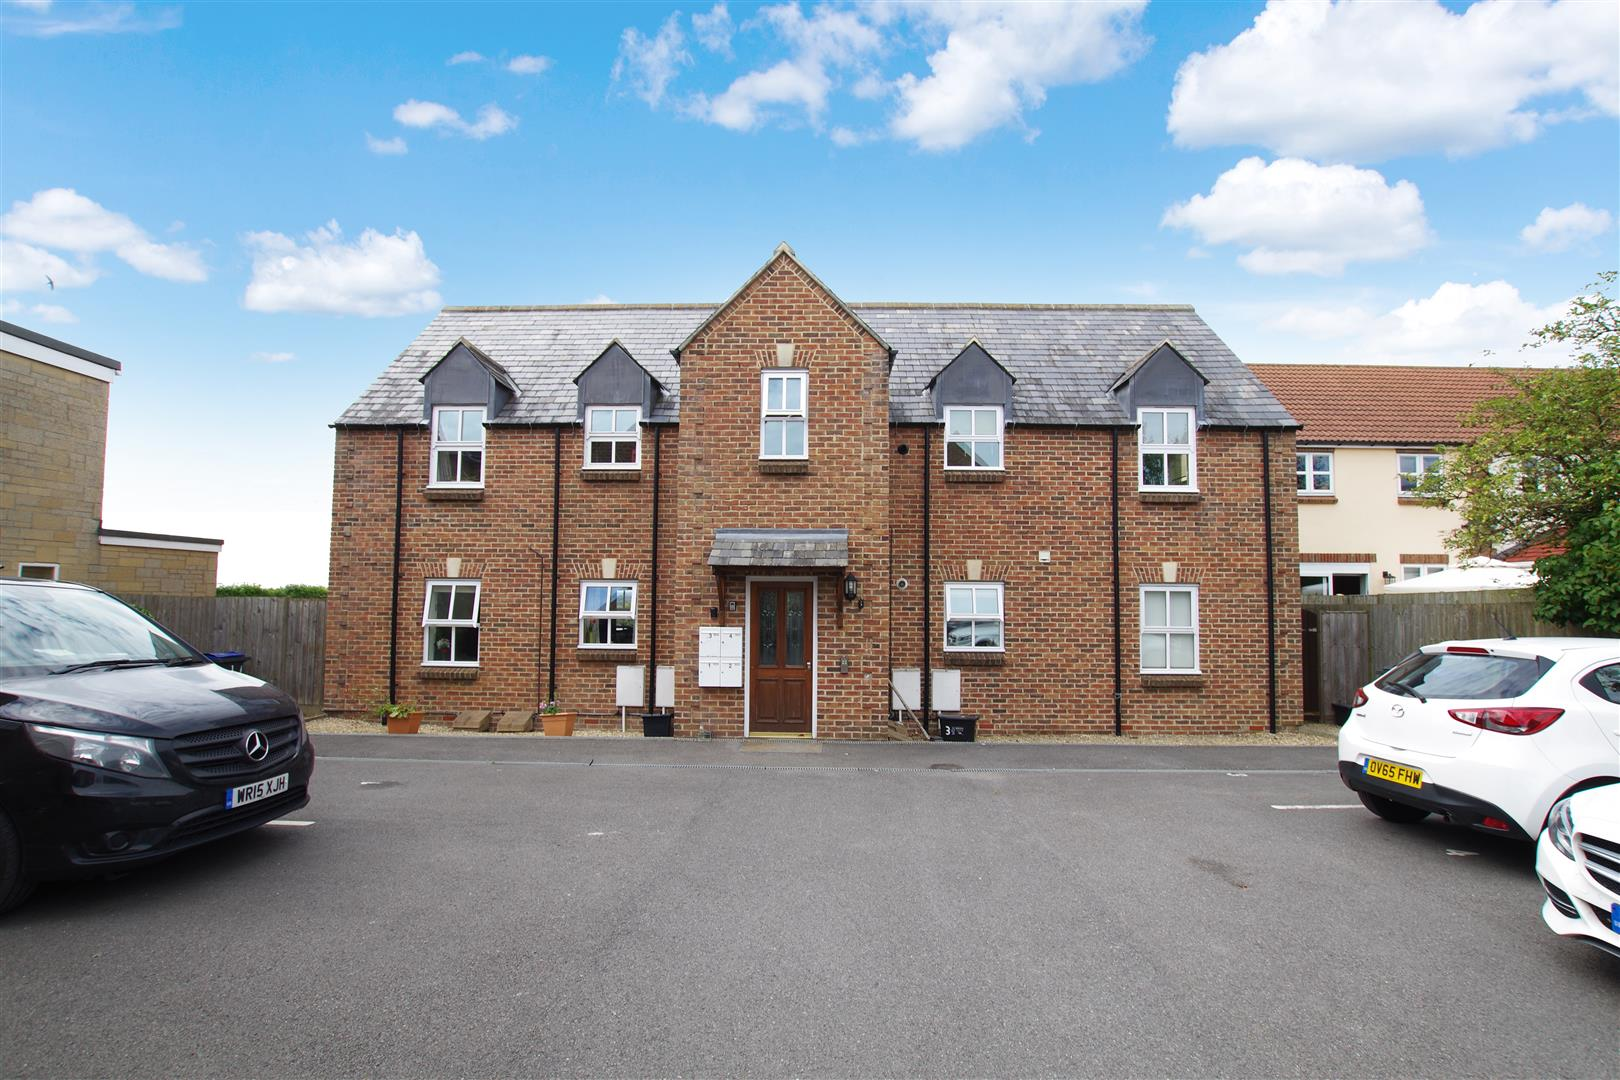 Buthay Court, Royal Wootton Bassett